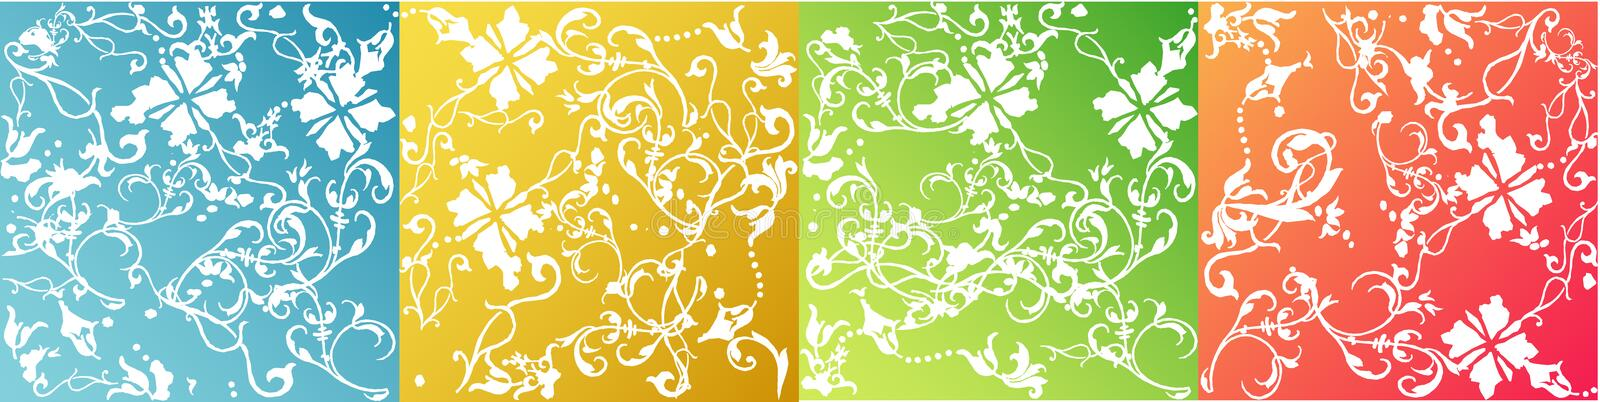 Vectors style backgrounds vector illustration